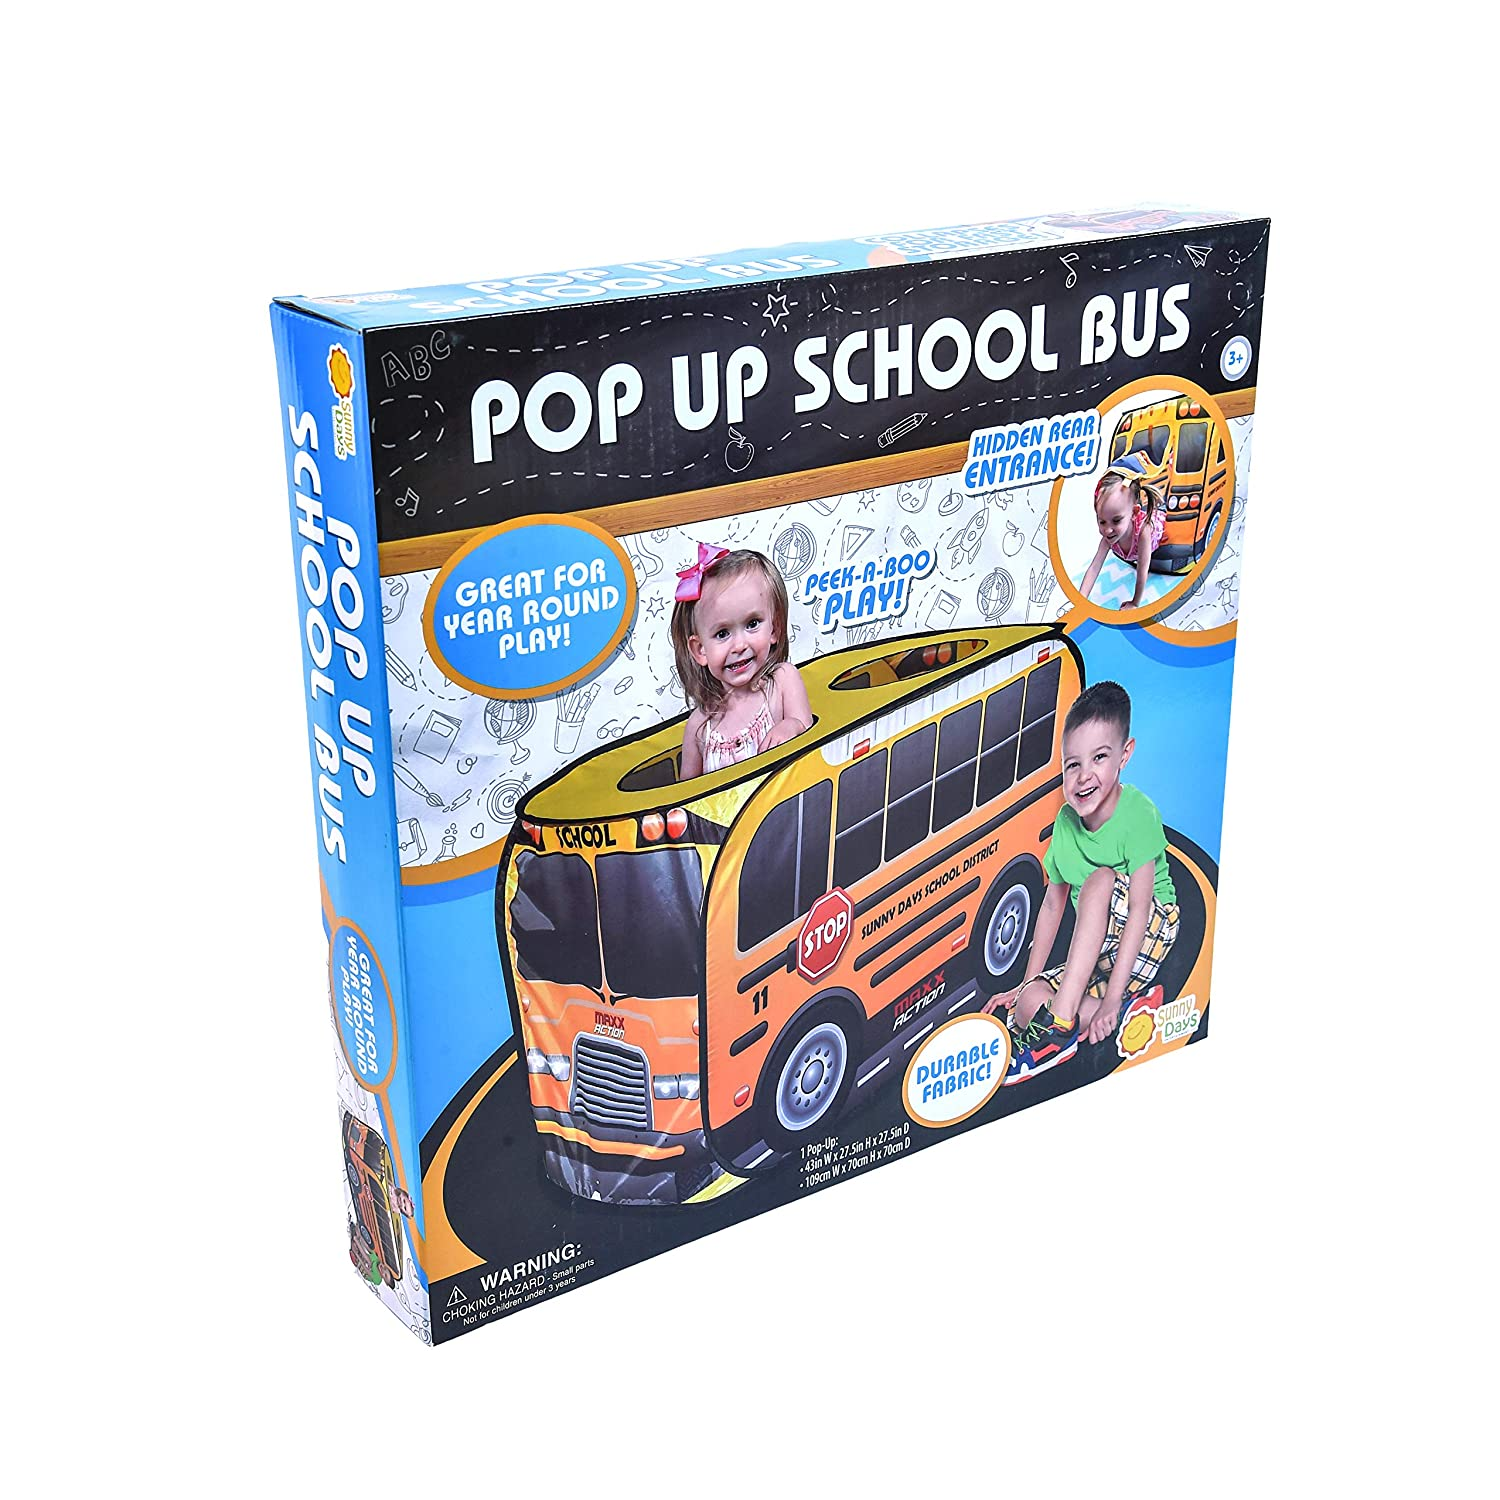 Yellow Vehicle Toy Gift for Boys and Girls Sunny Days Entertainment Pop Up School Bus Indoor Playhouse for Kids